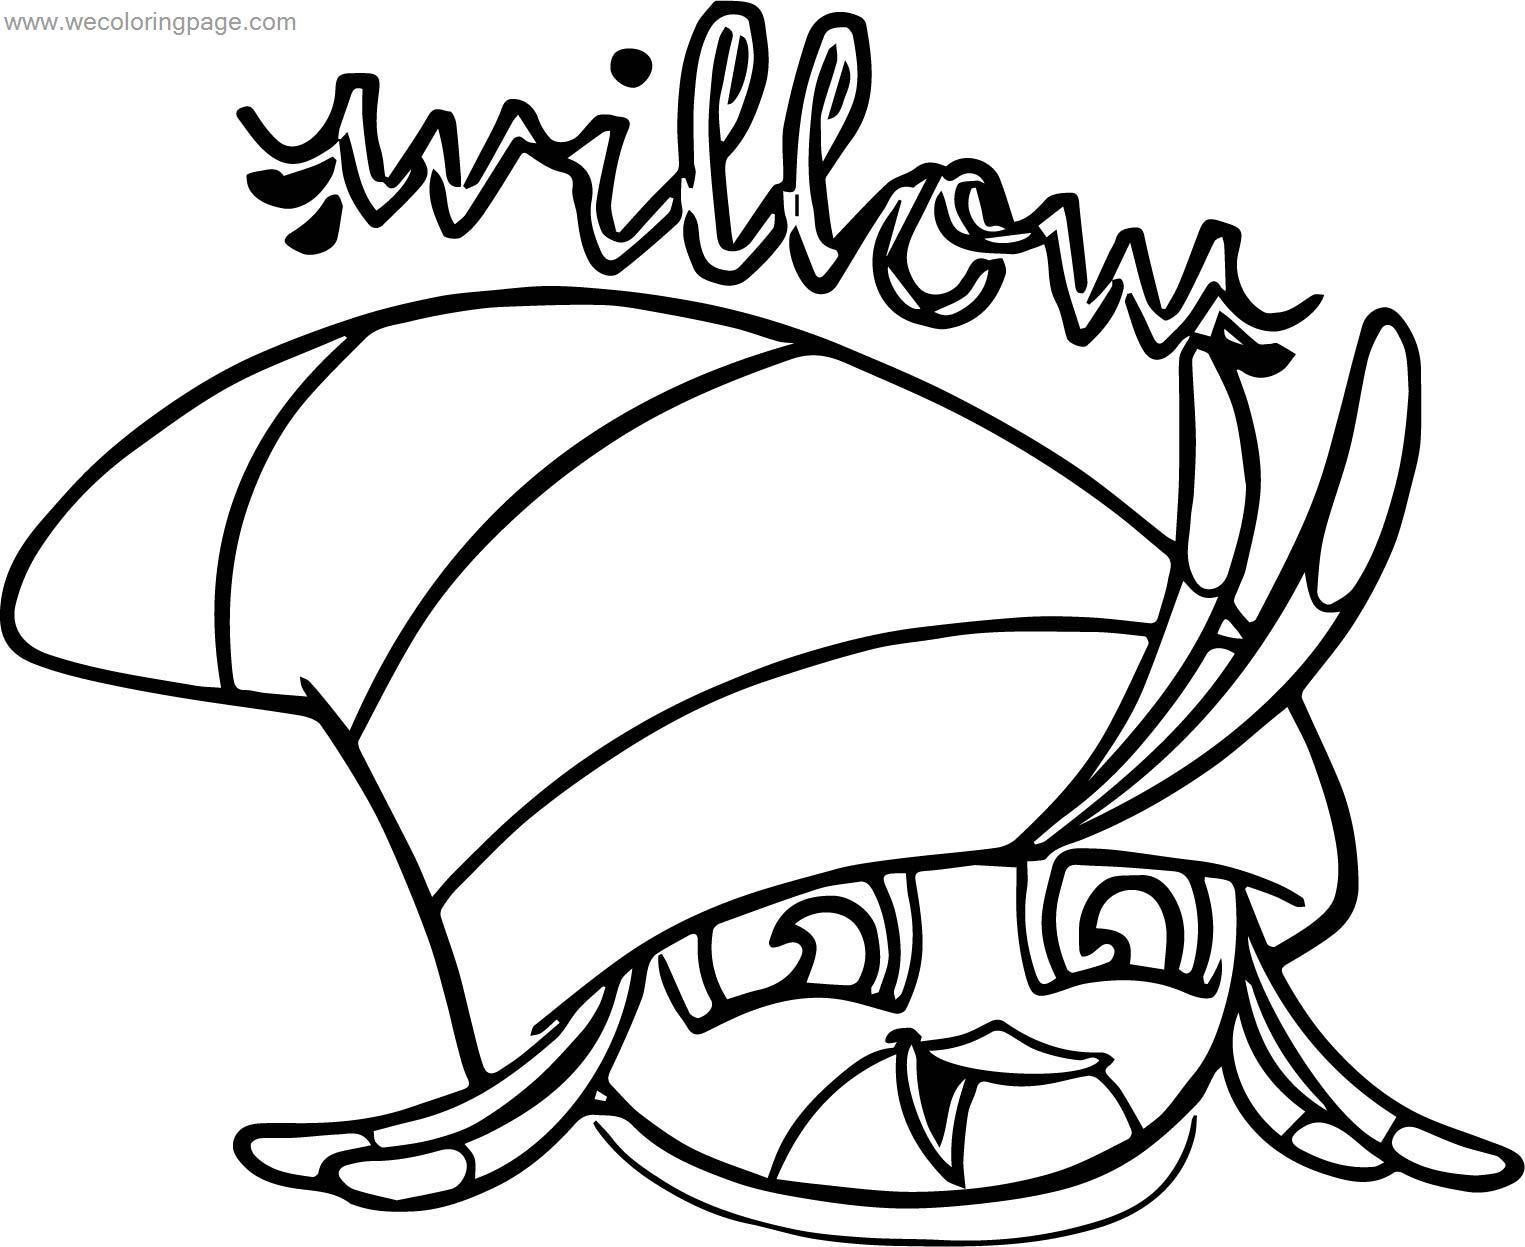 Angry Birds Stella Guide Birds Willow wecoloringpage.com Coloring Page